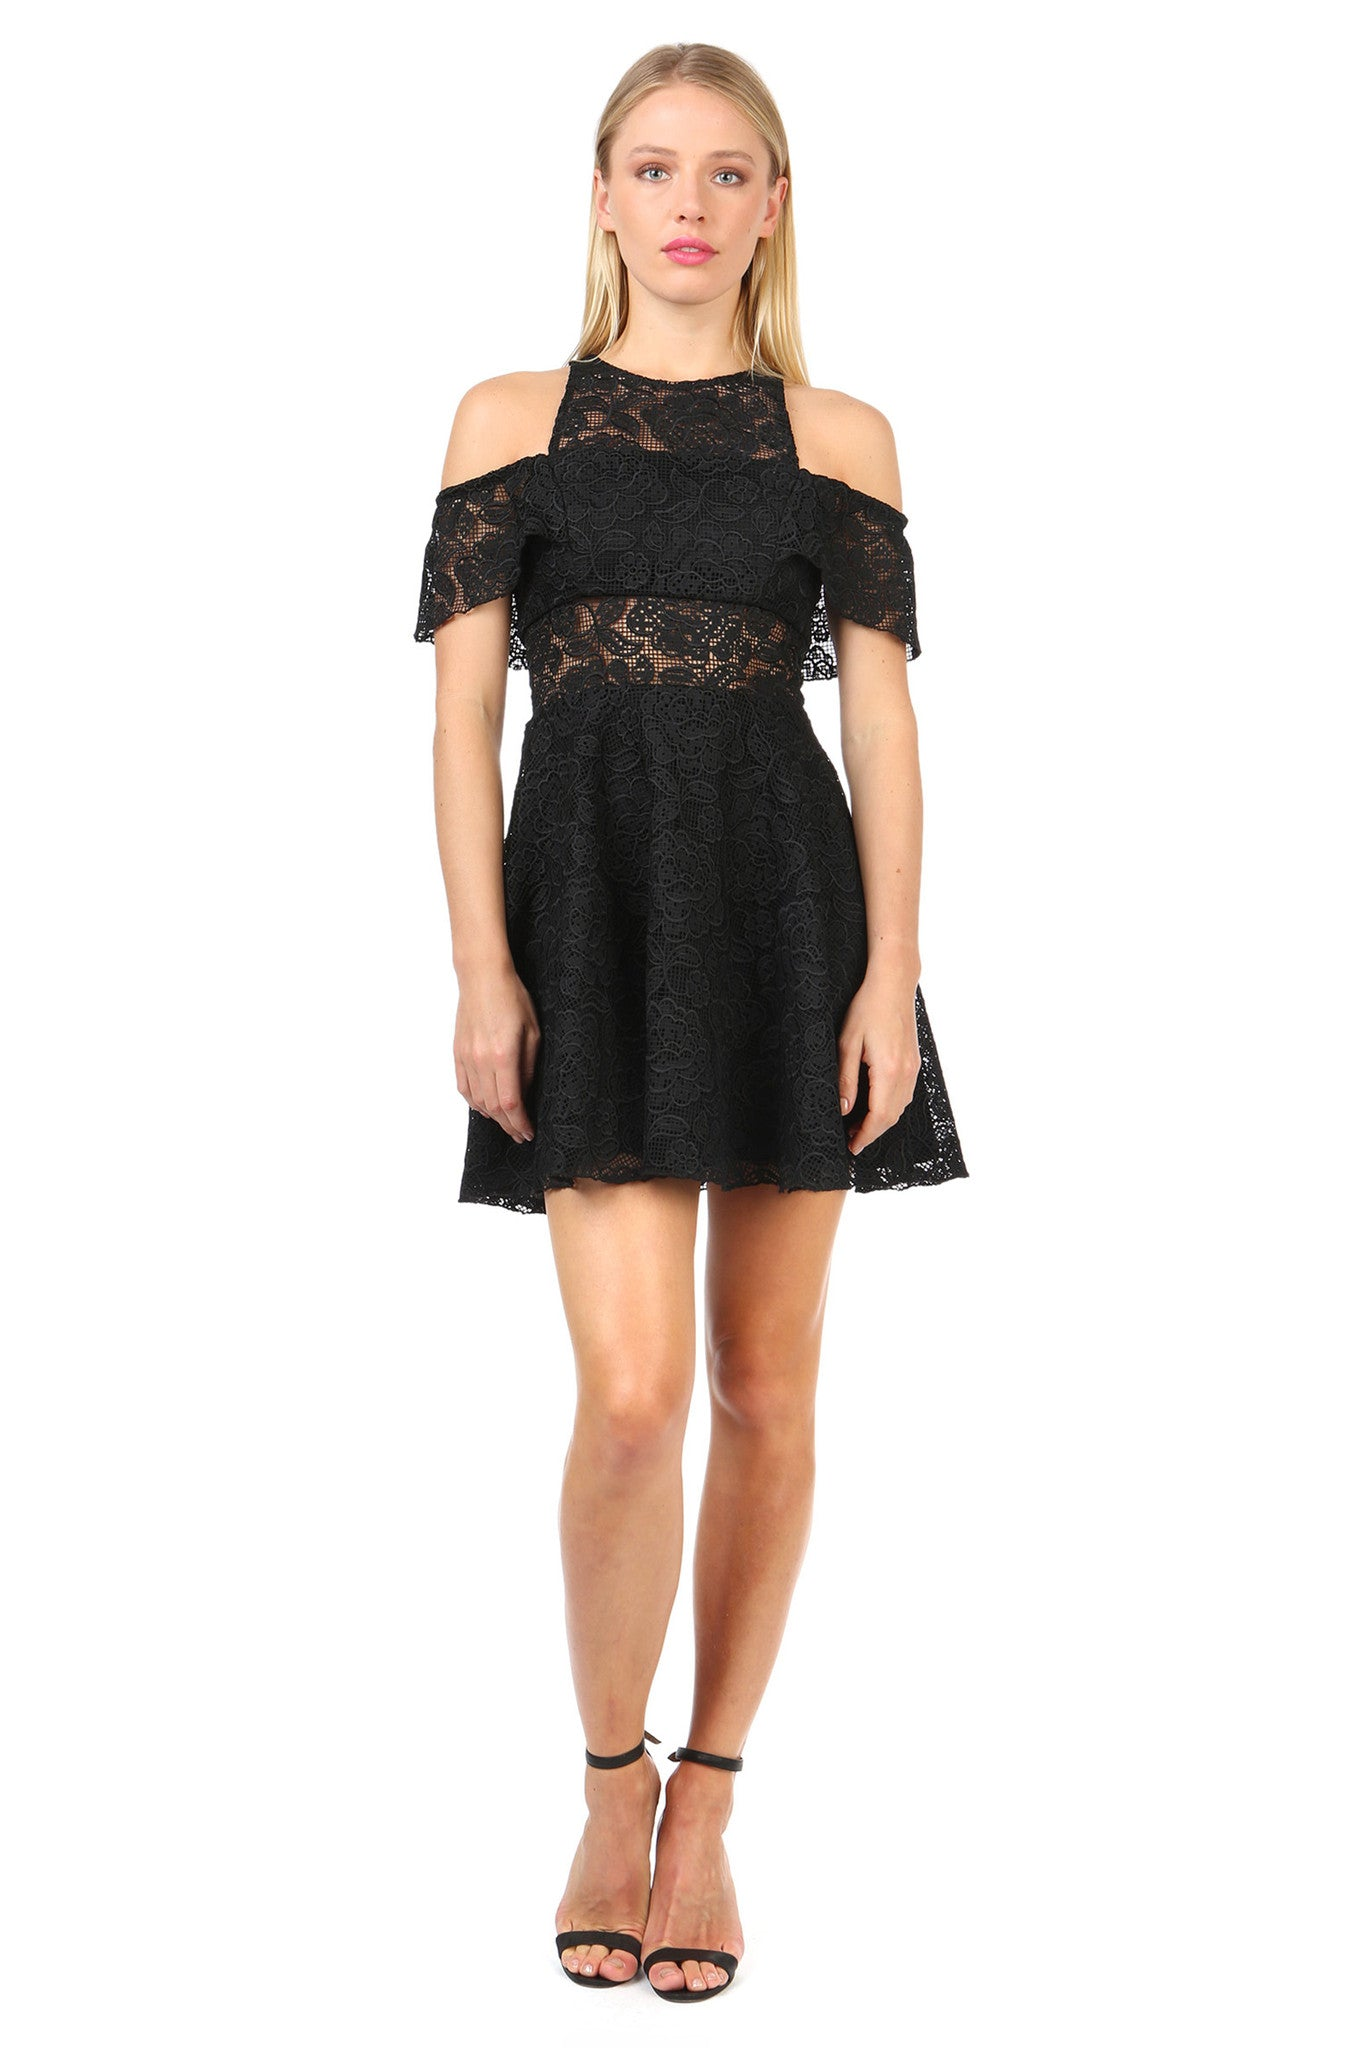 Jay Godfrey Black Lace Cold Shoulder Dress - Front View